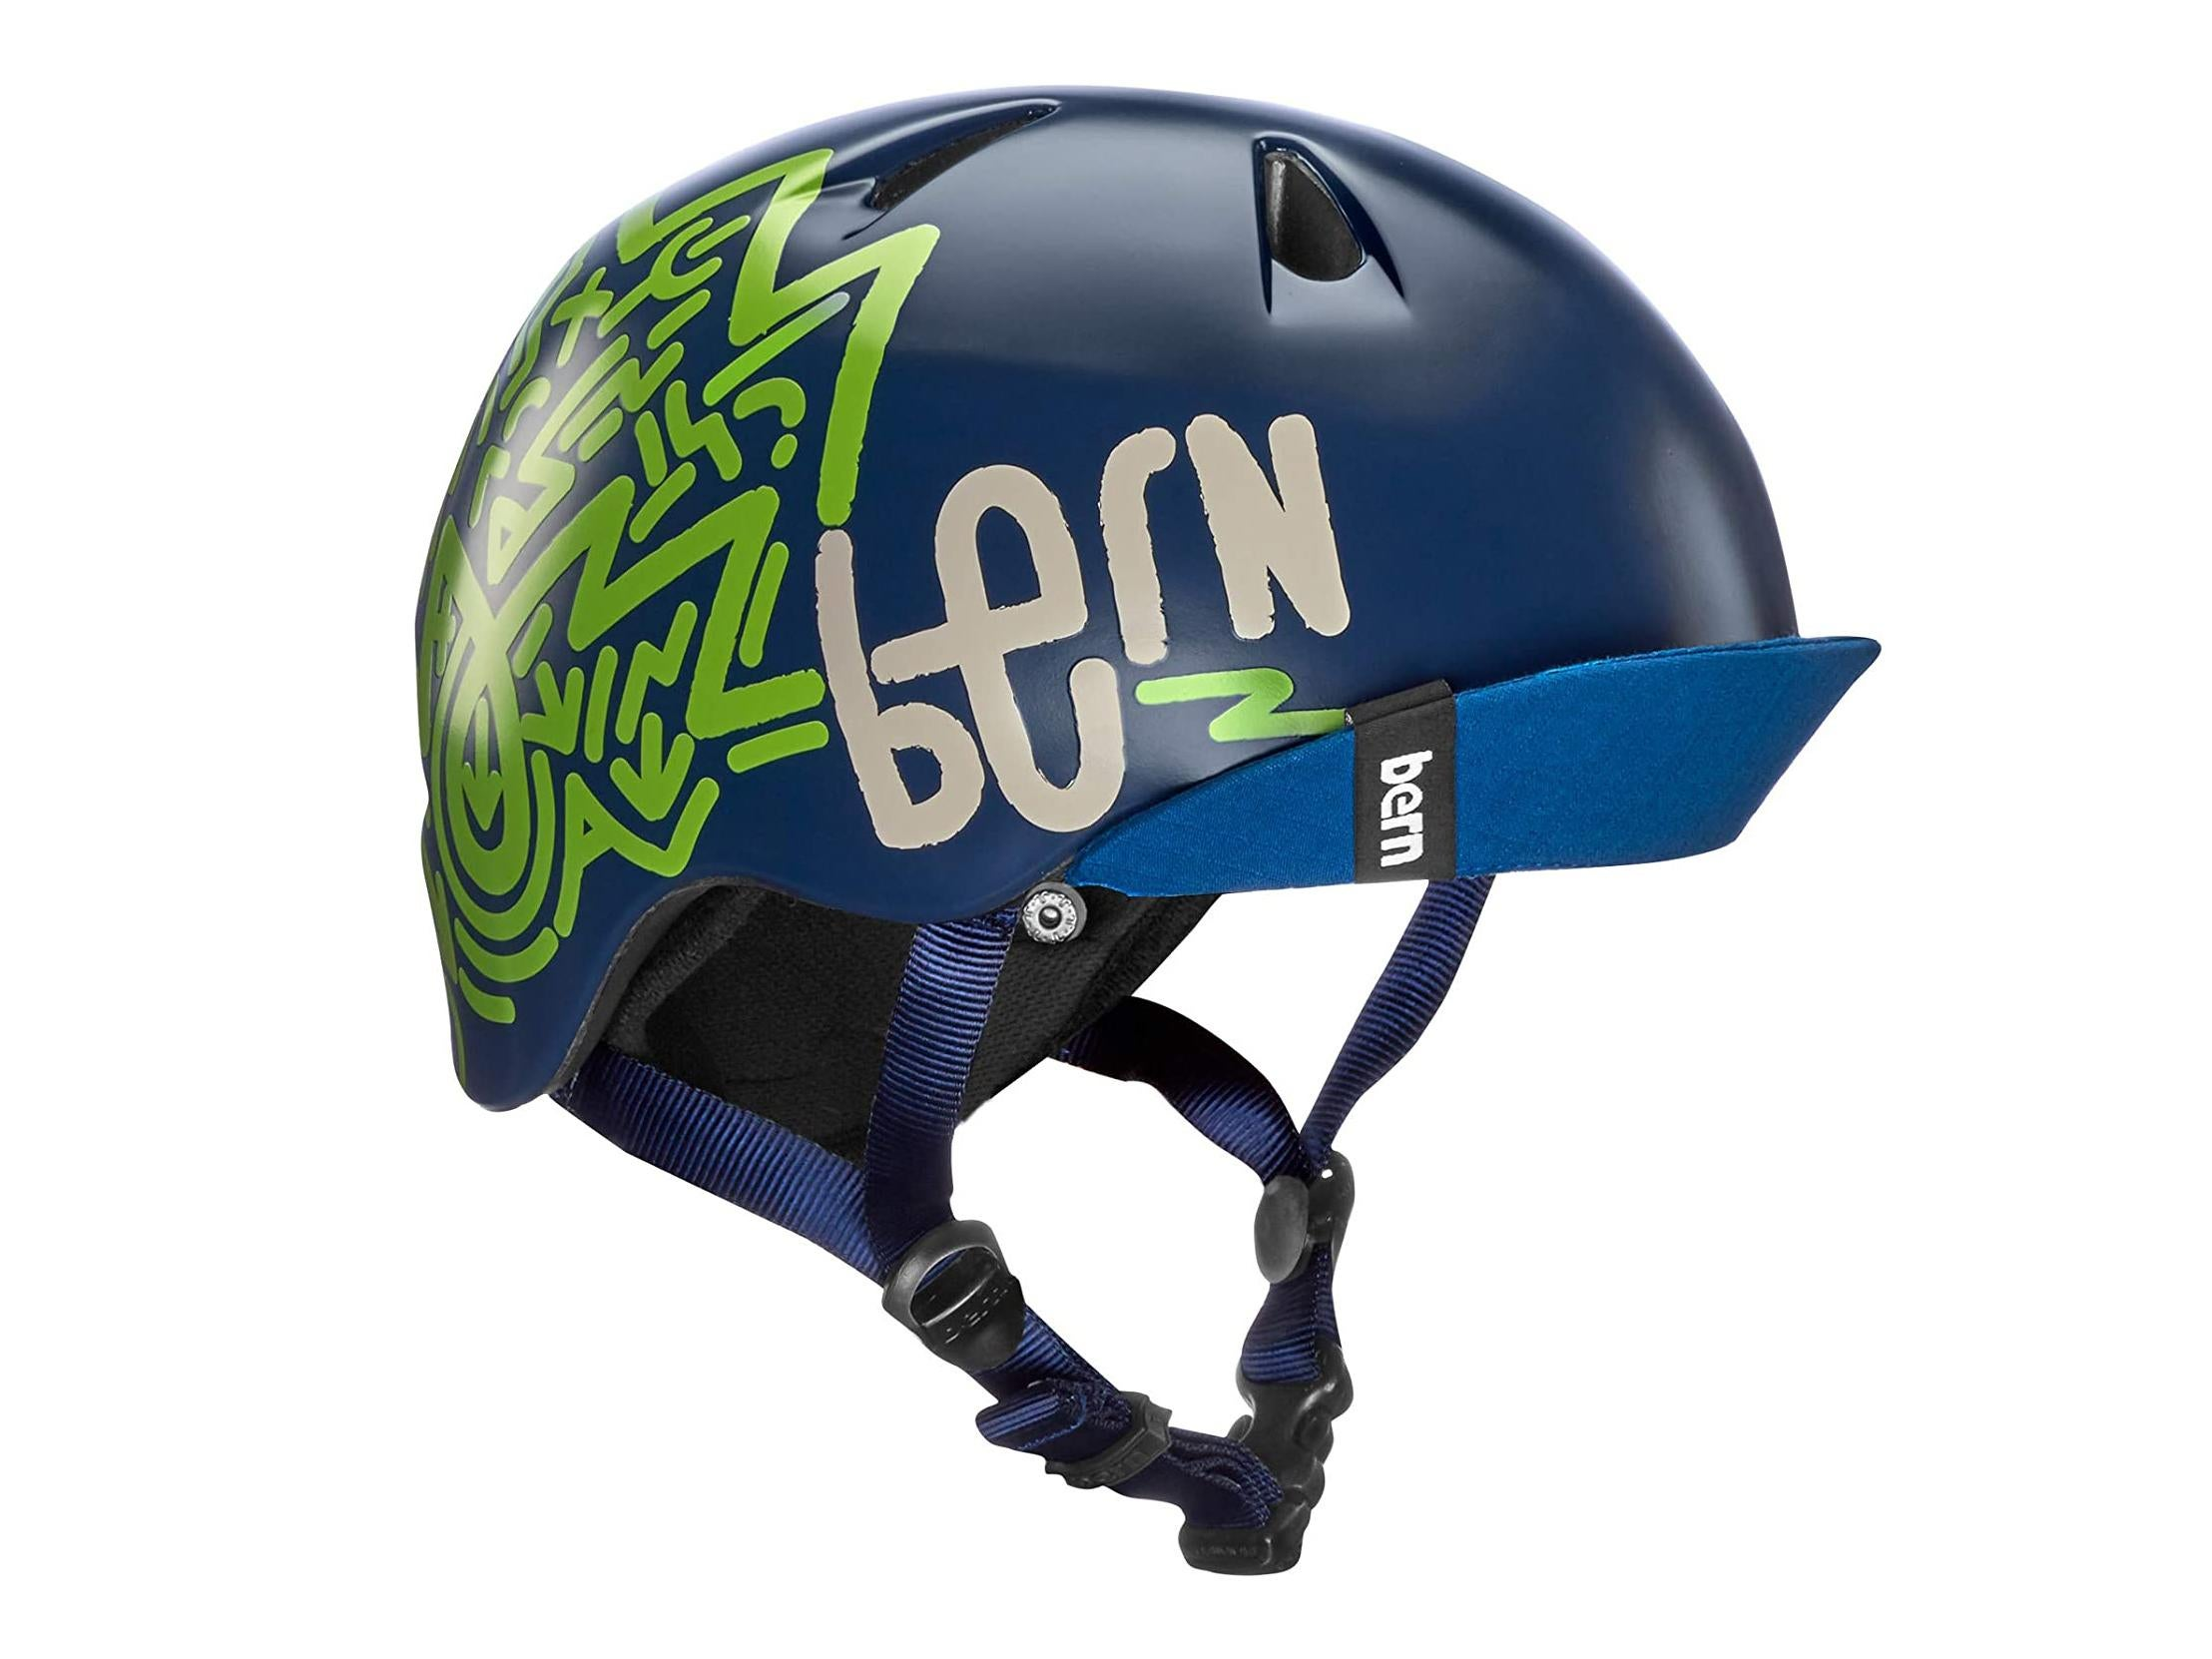 boy and Girl Multi-Purpose Sports Animal Skating Scooter Helmet Suitable as a Gift,S Childrens Bicycle Safety Helmet